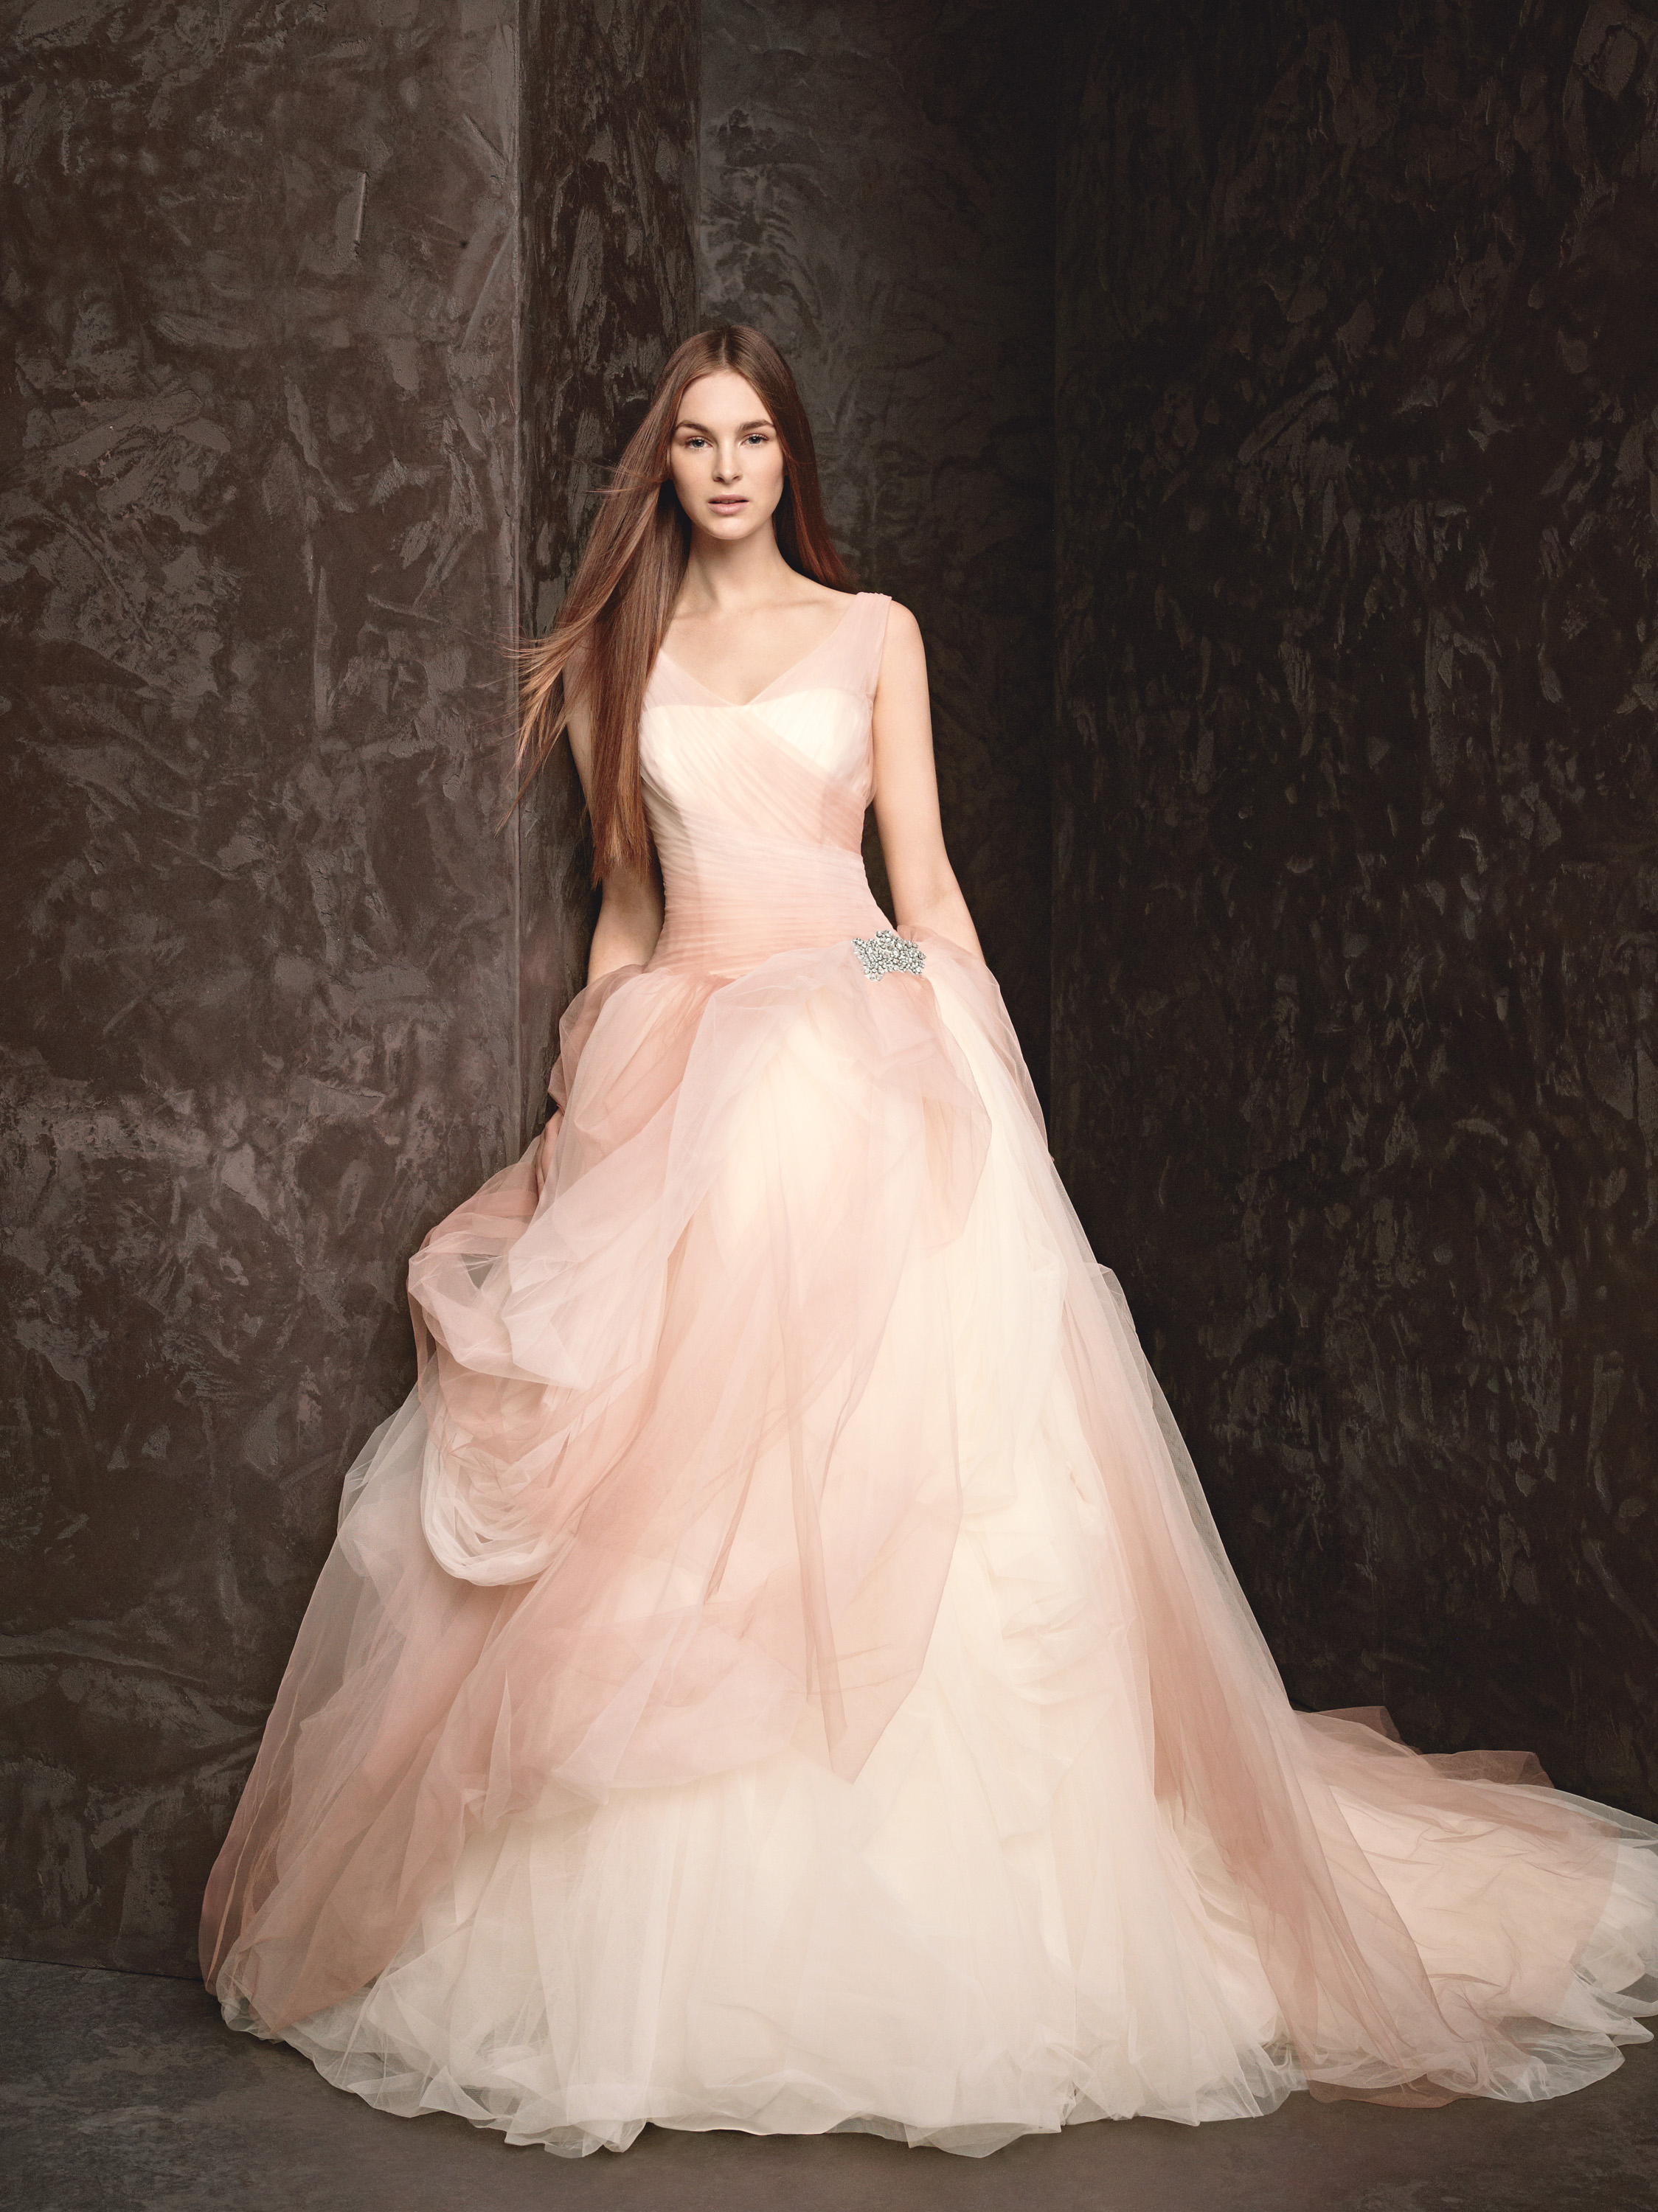 Spring 2013 wedding dress white by vera wang bridal gowns for White vera wang wedding dresses